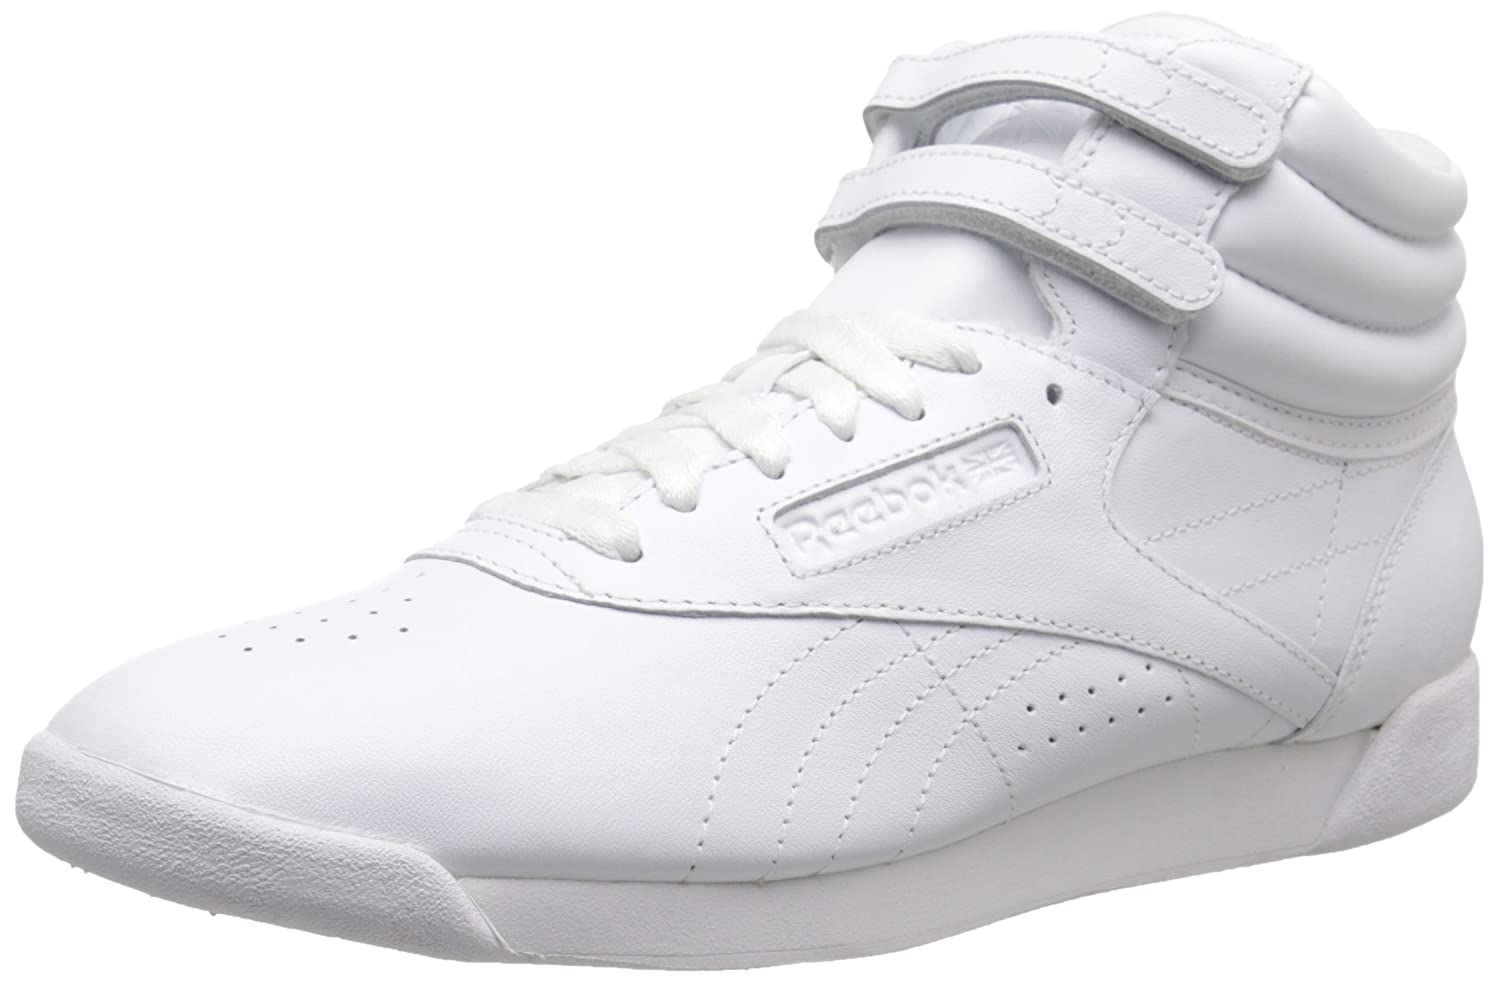 Reebok Women's Freestyle Hi Lace-Up Sneaker B005SARMNU 10.5 B(M) US|White/White/White